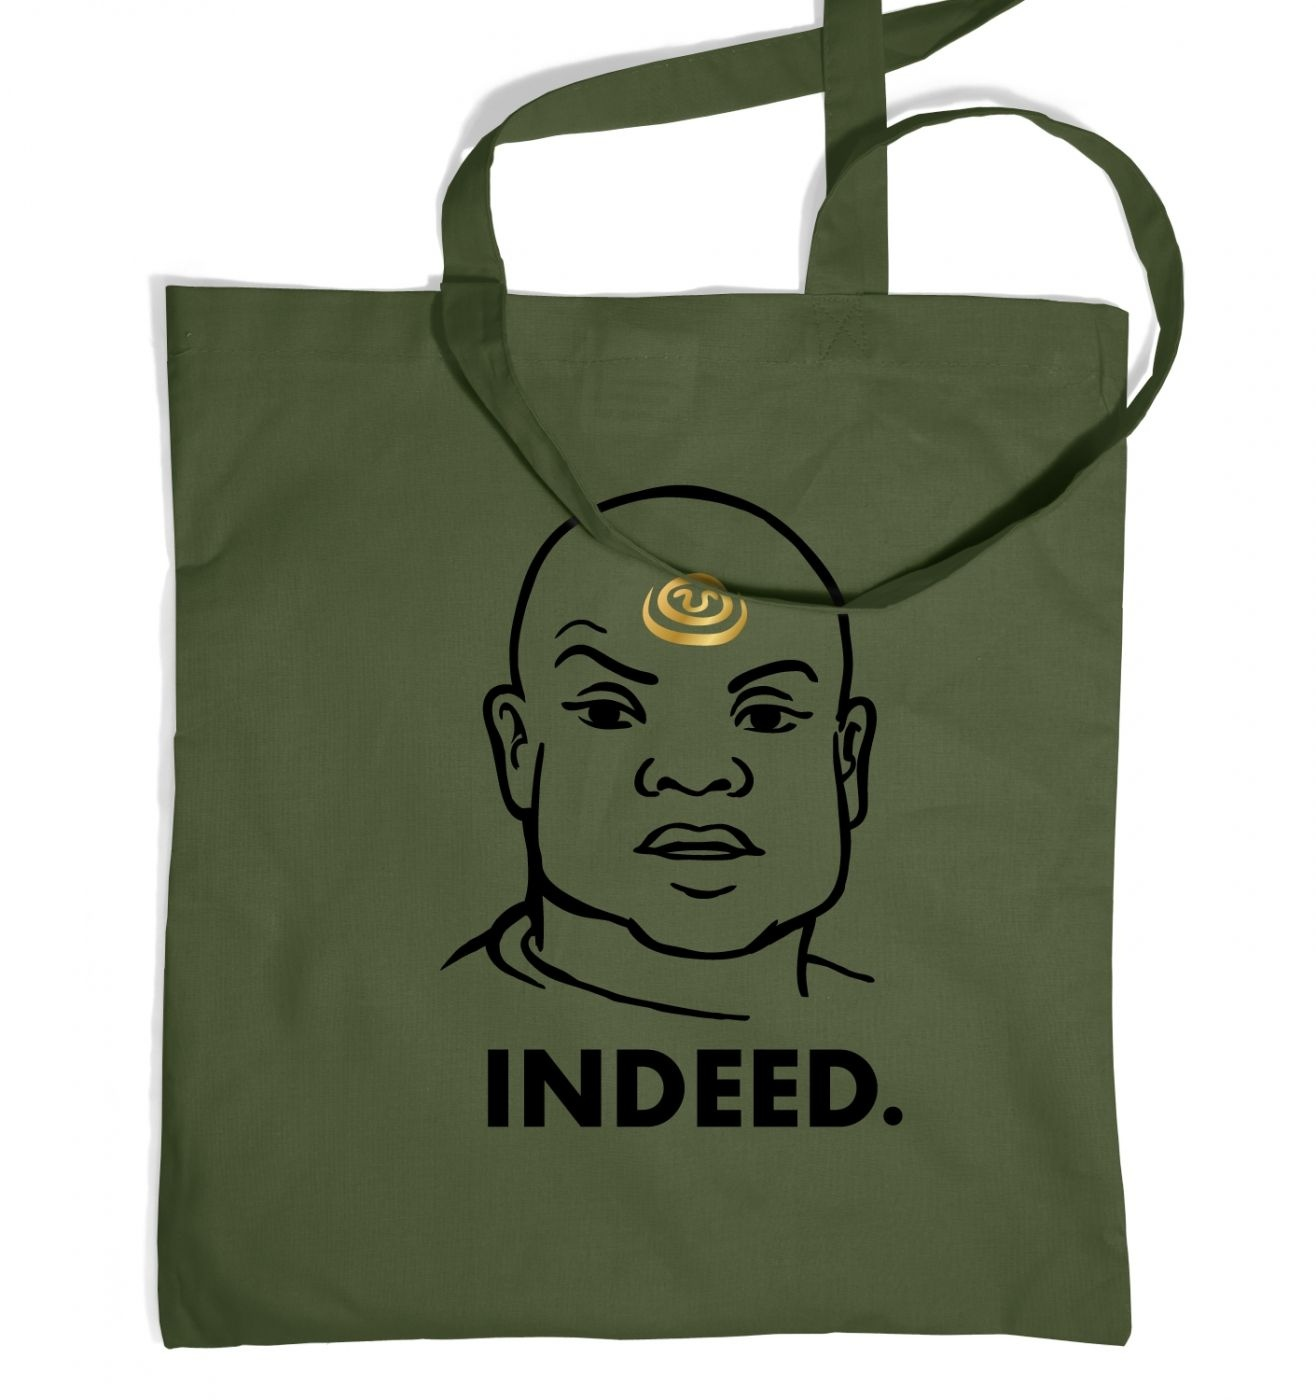 Indeed Tealc tote bag